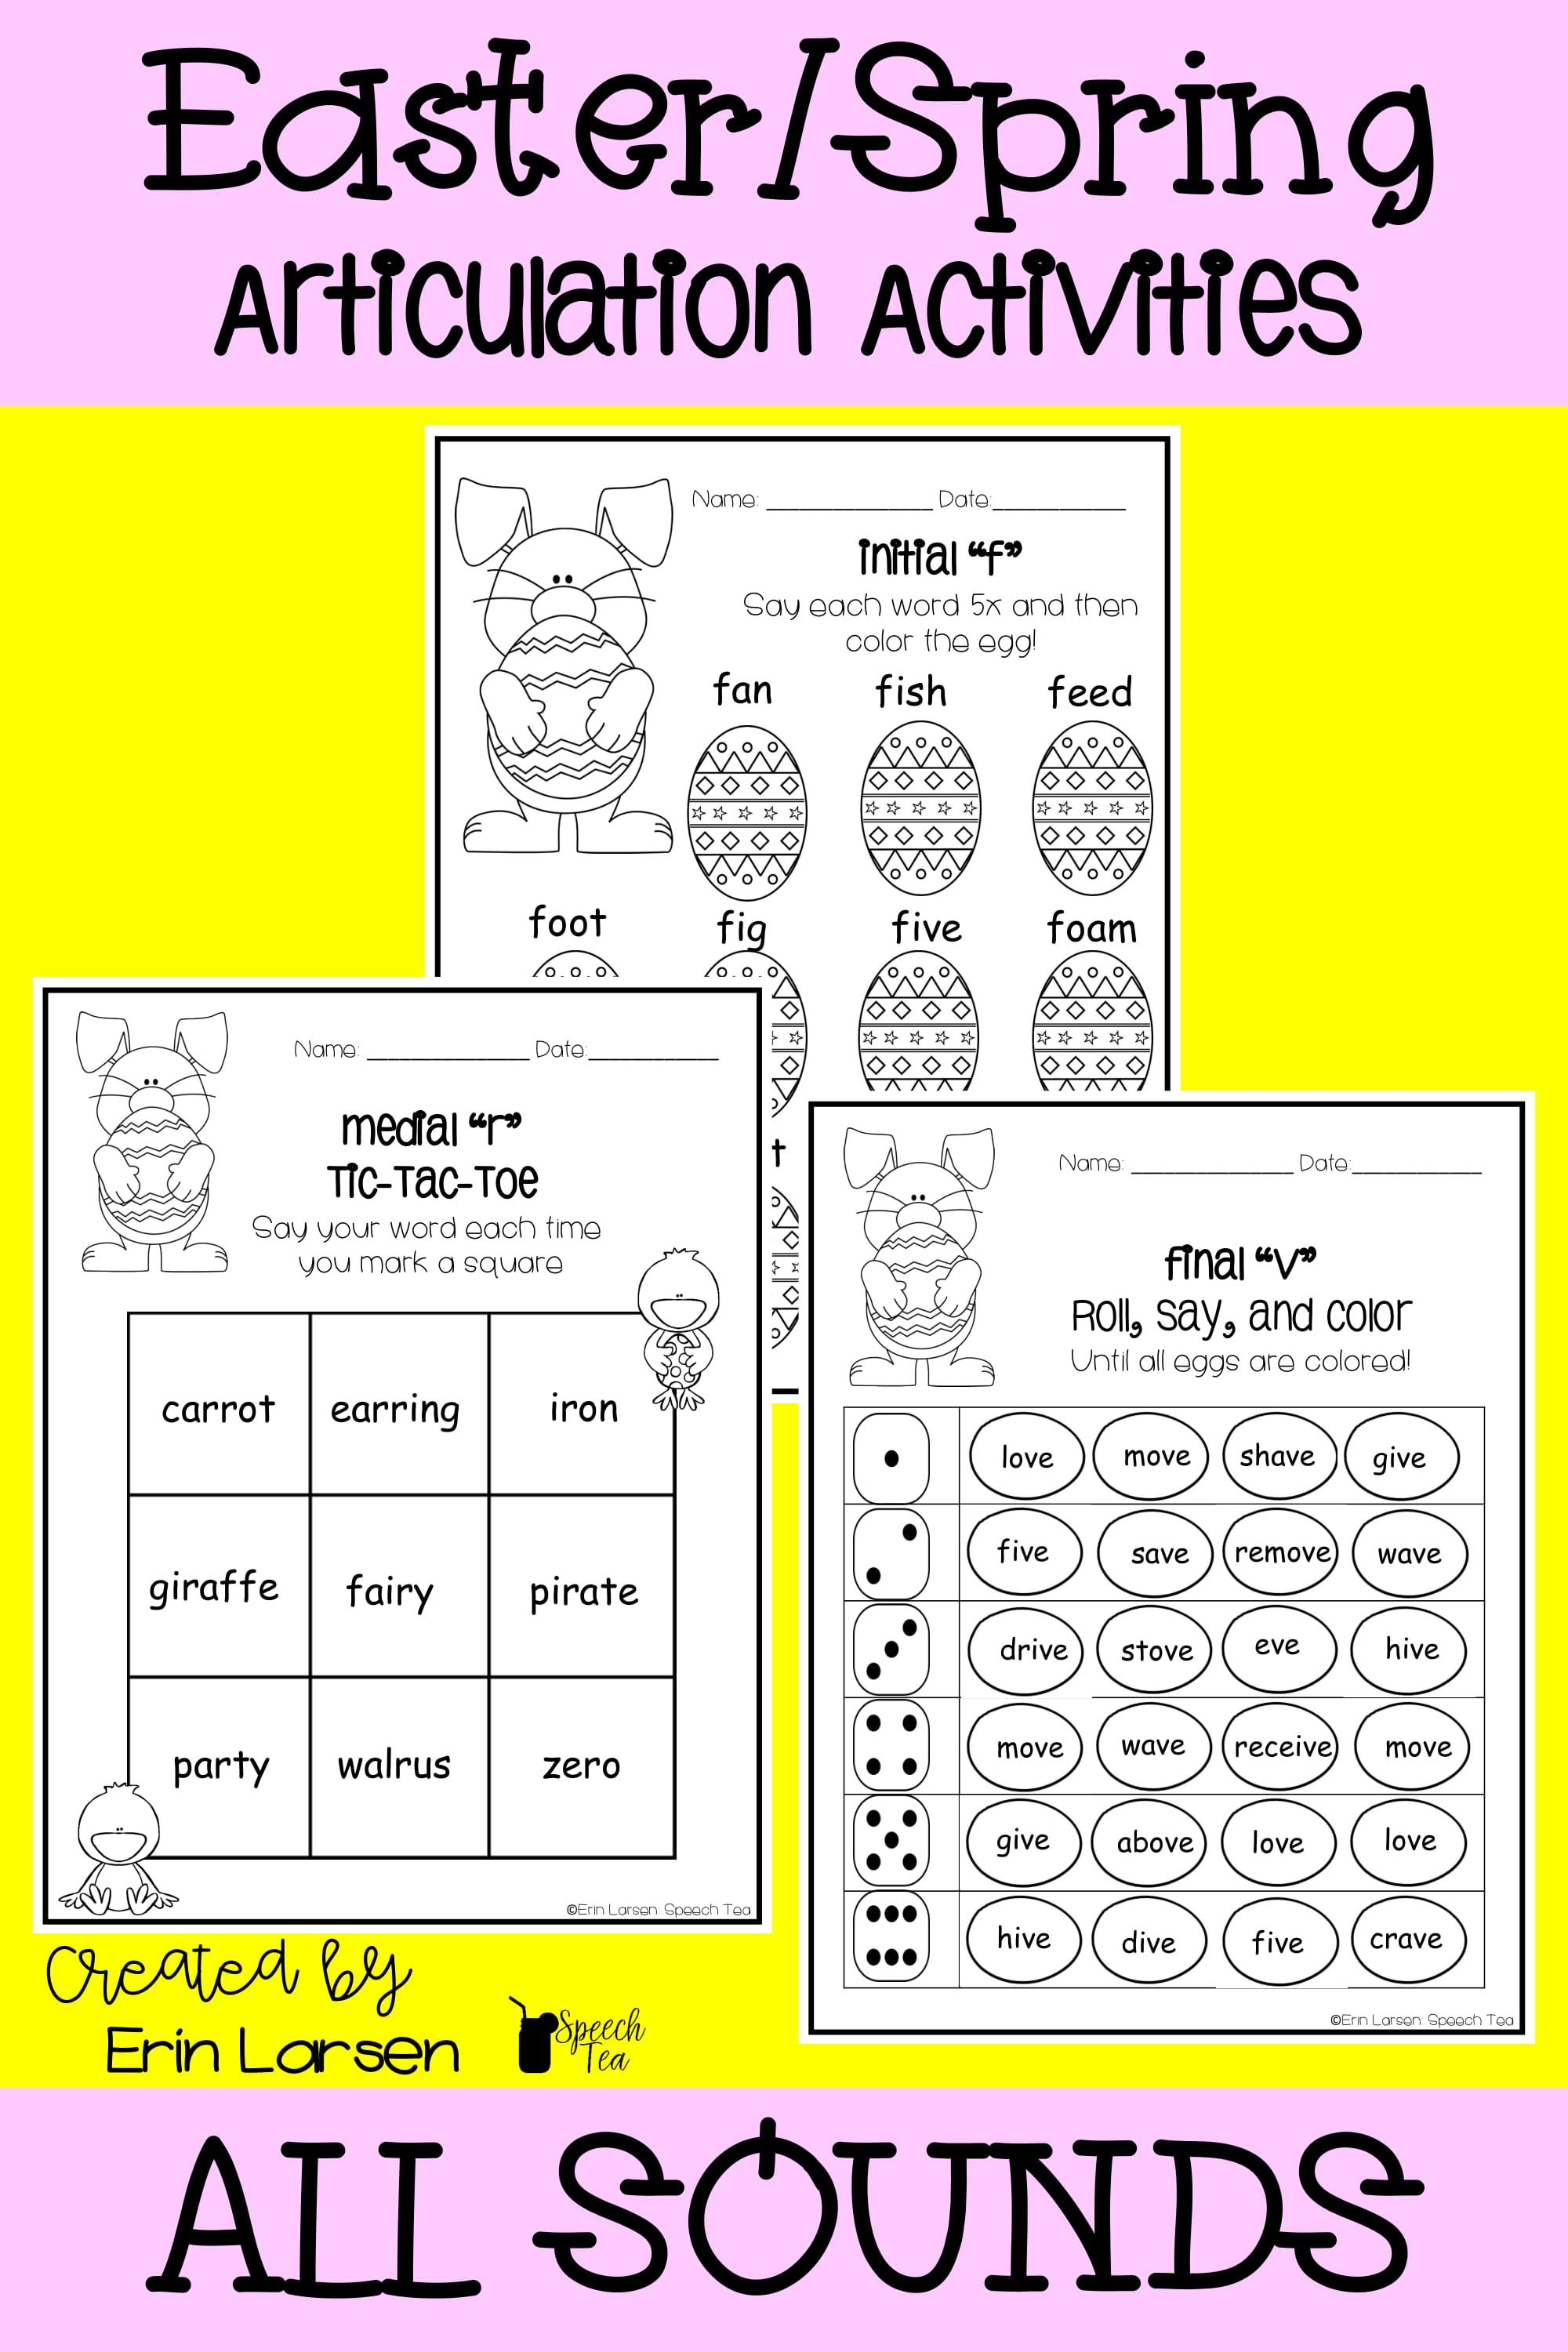 These articulation activities are great for Easter or Spring! ALL sounds included! Click for more info!